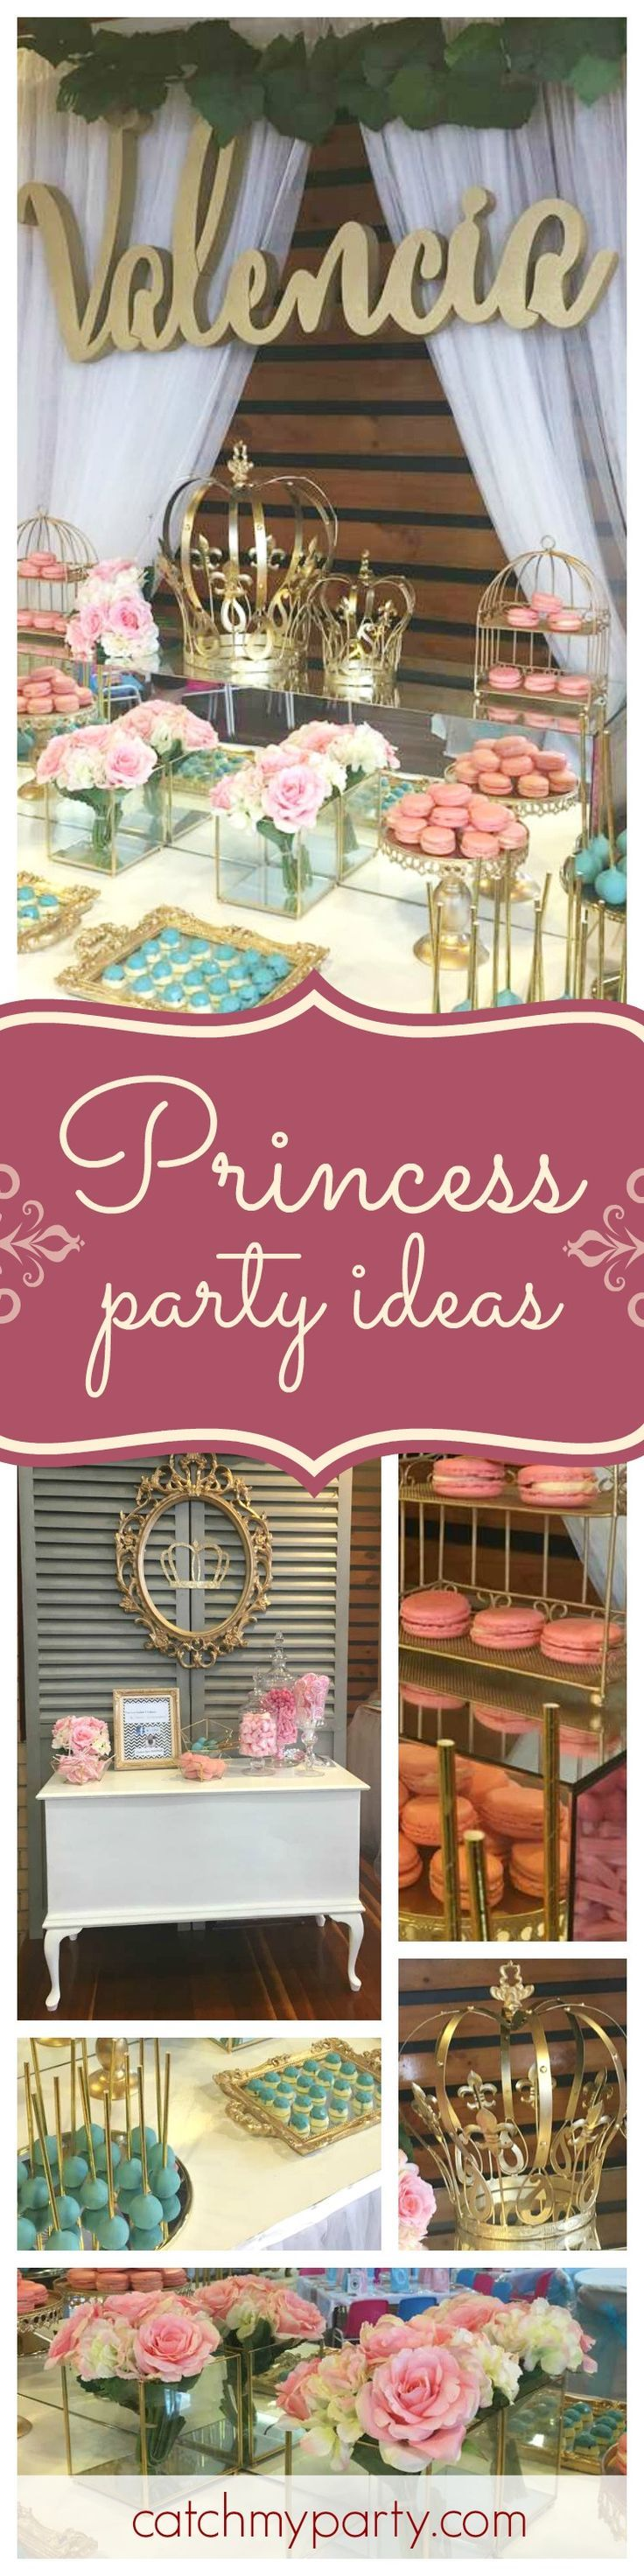 Take a look at this vintage princess birthday party. The dessert table and back drop are so pretty! See more party i deas and share yours at http://catchMyParty.com